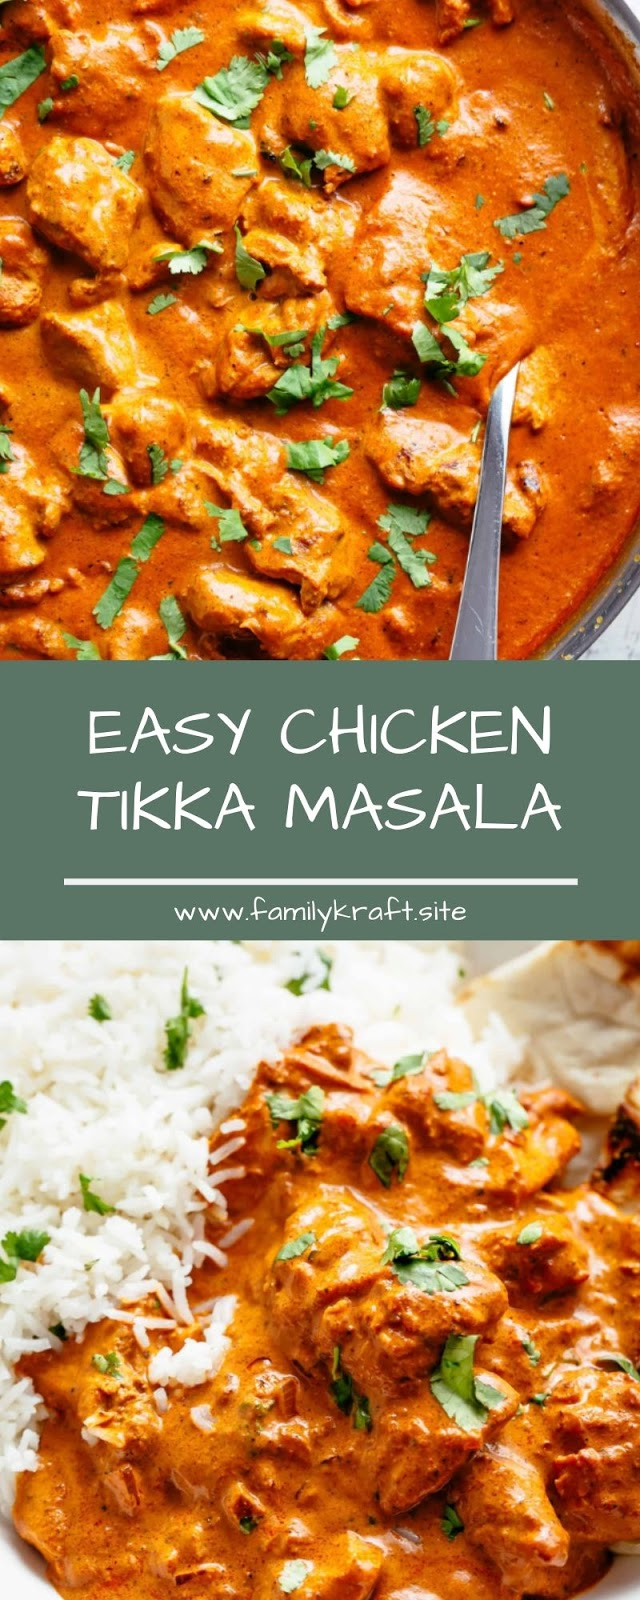 EASY CHICKEN TIKKA MASALA